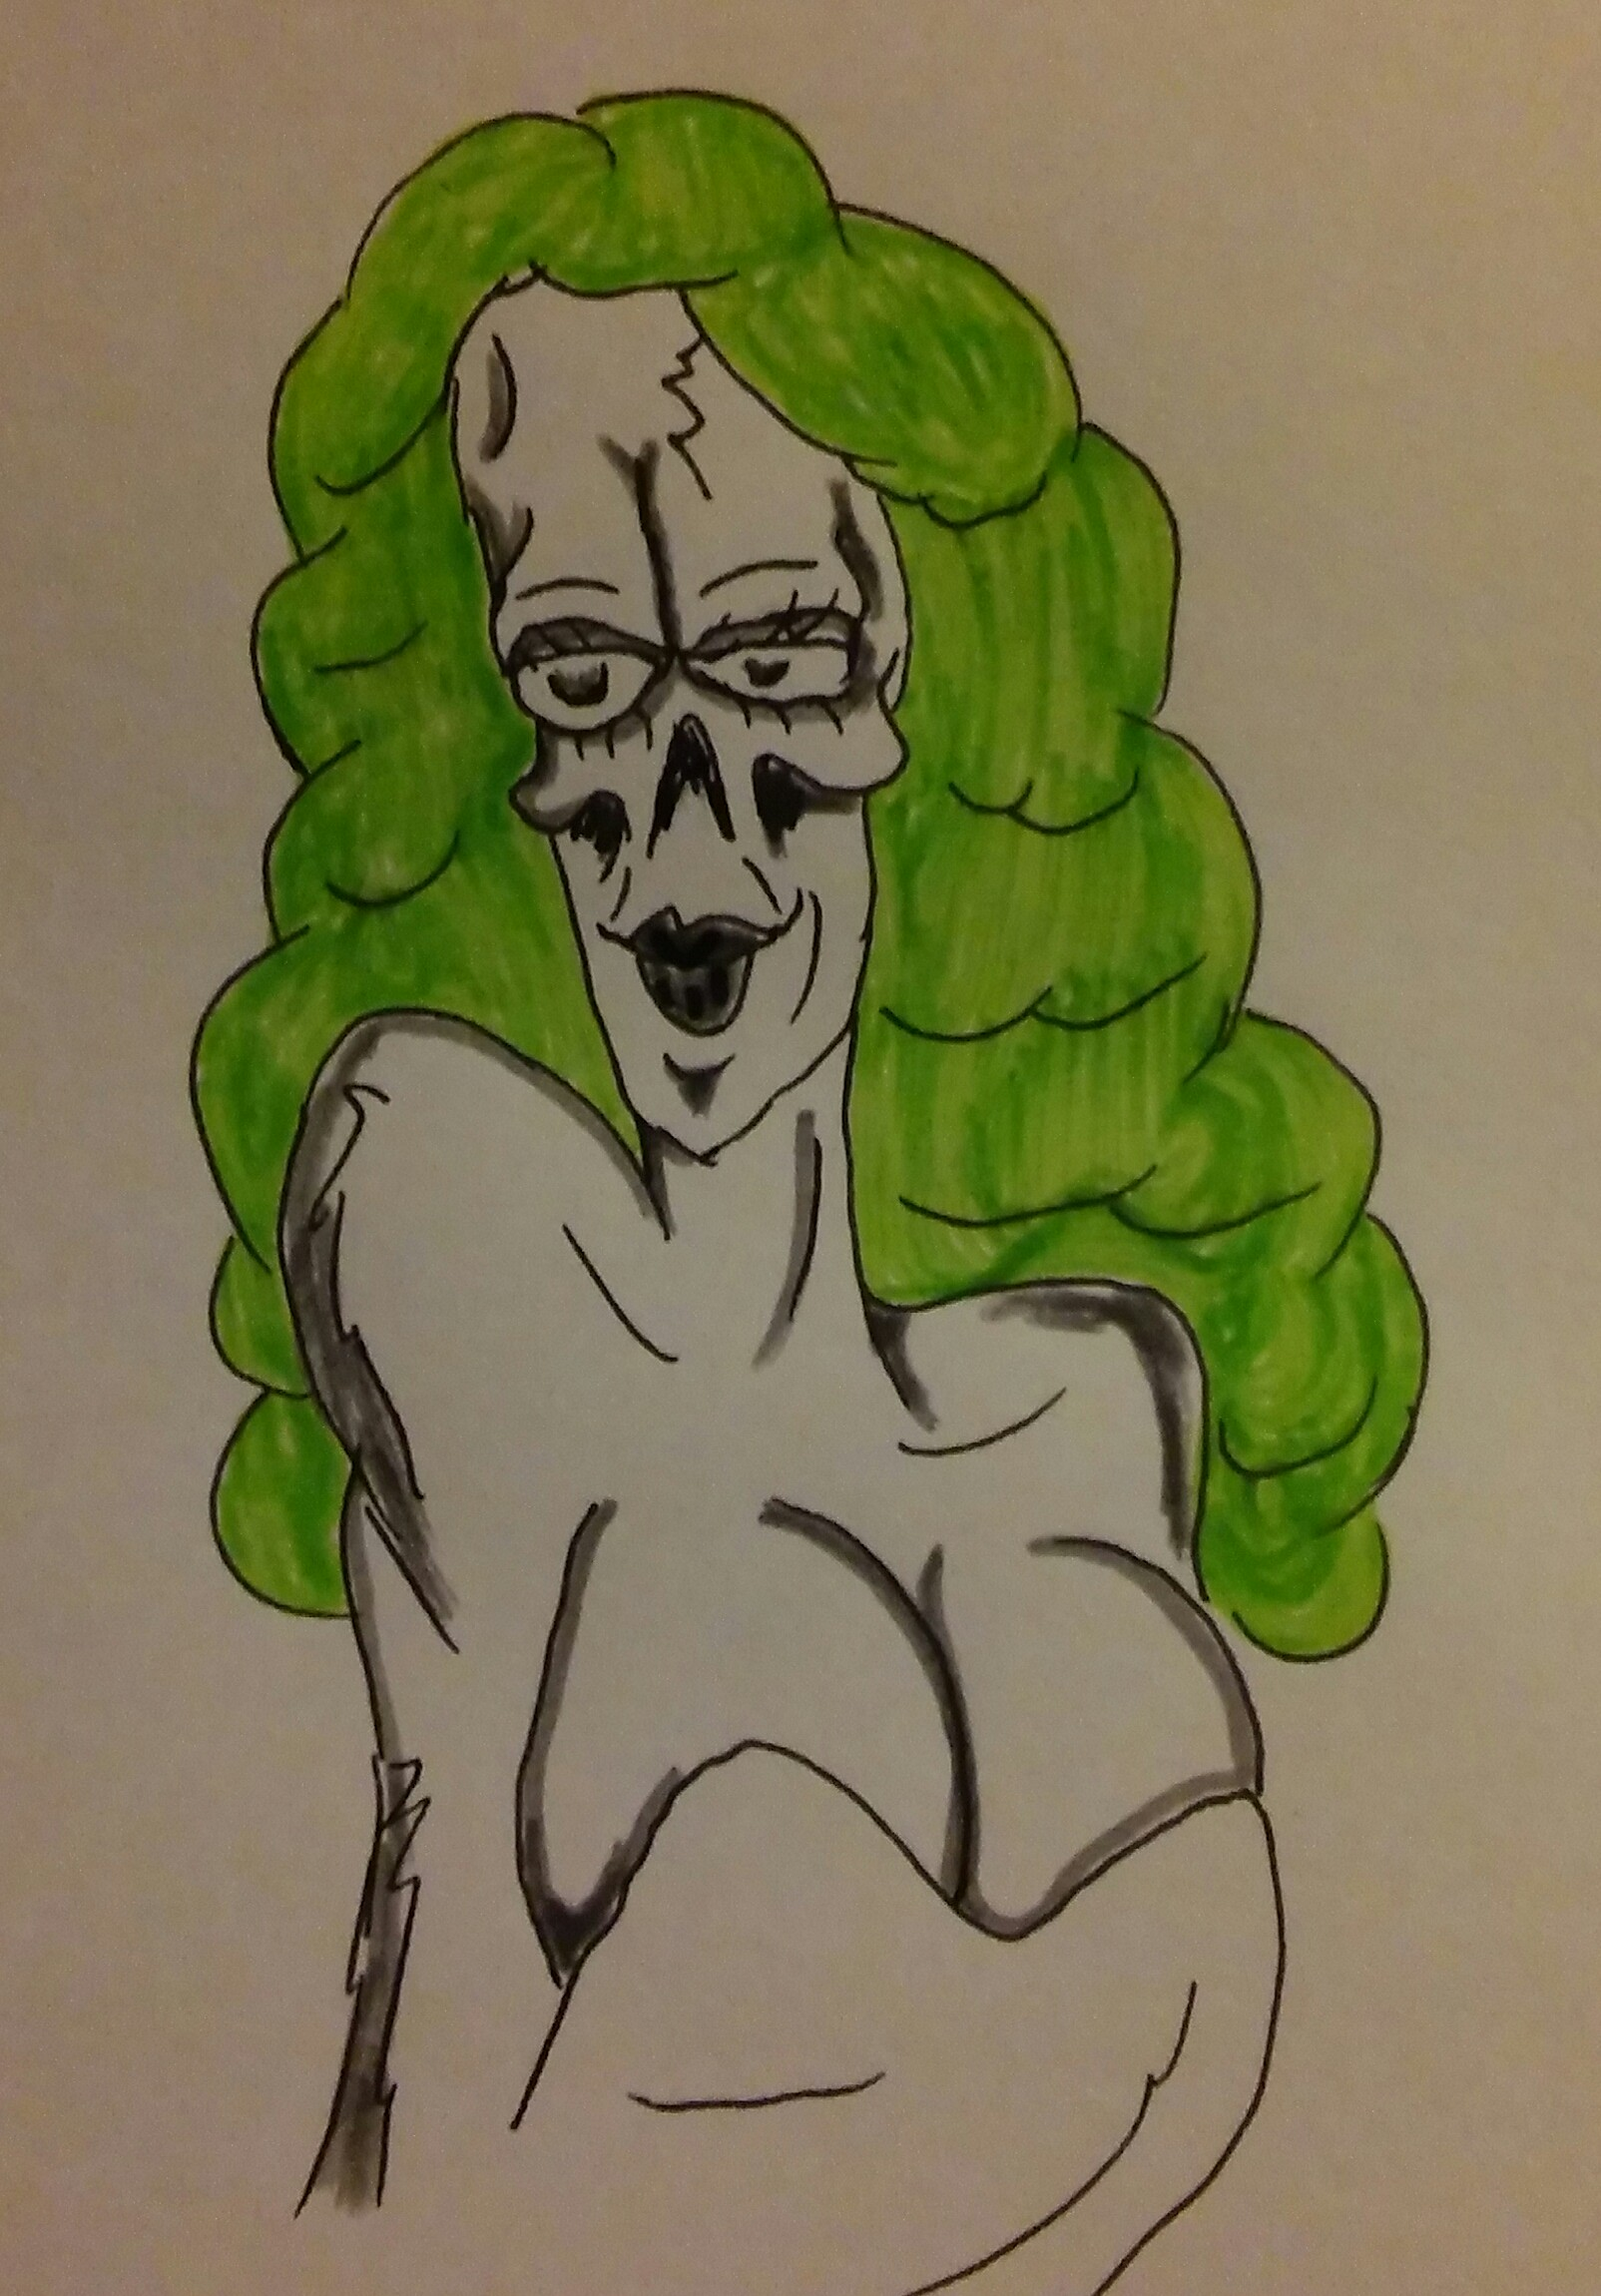 Green haired ghoul